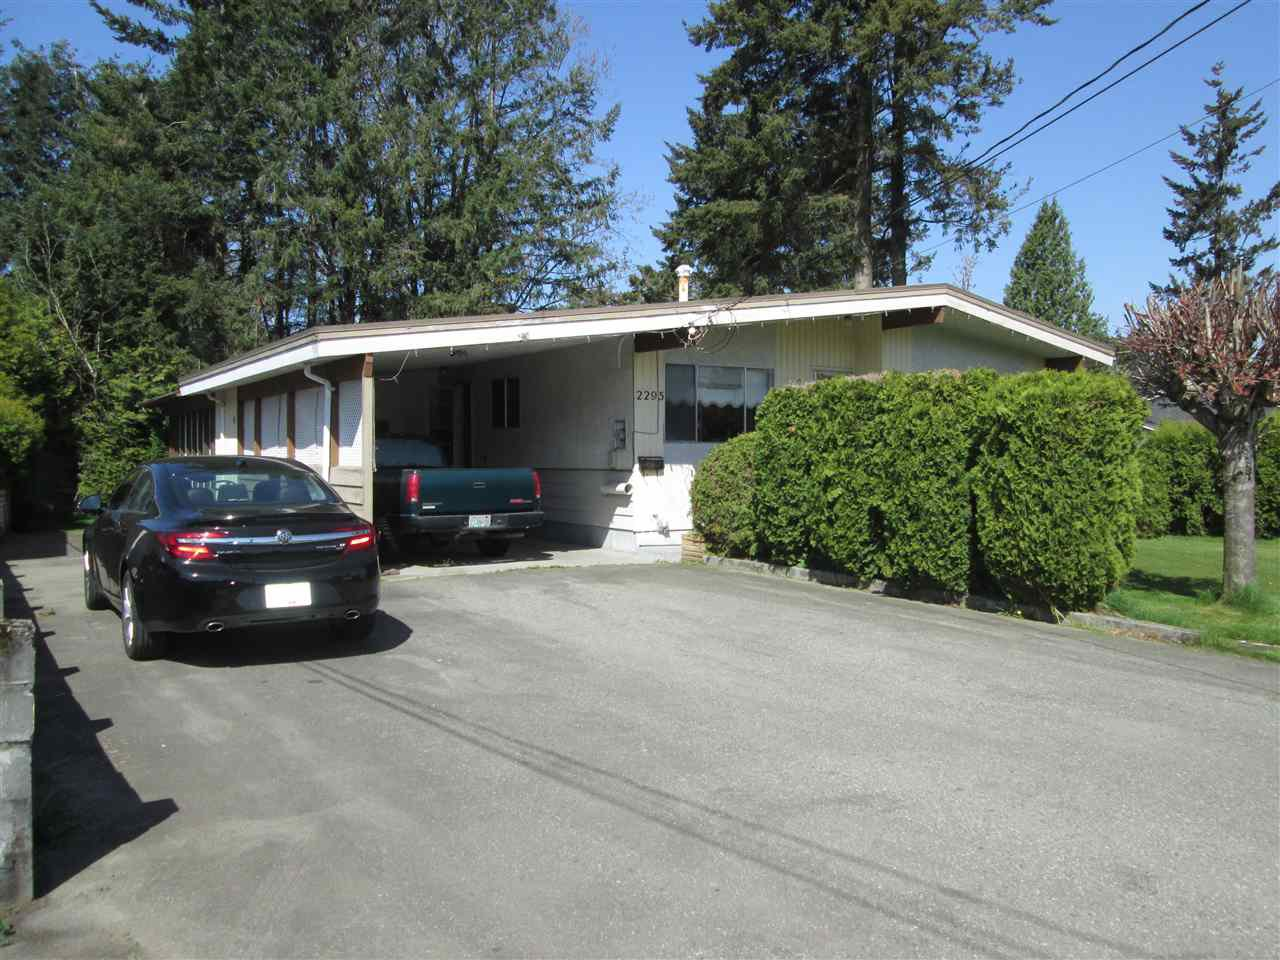 Main Photo: 2295 HOLLY Street in Abbotsford: Abbotsford West House for sale : MLS®# R2261945